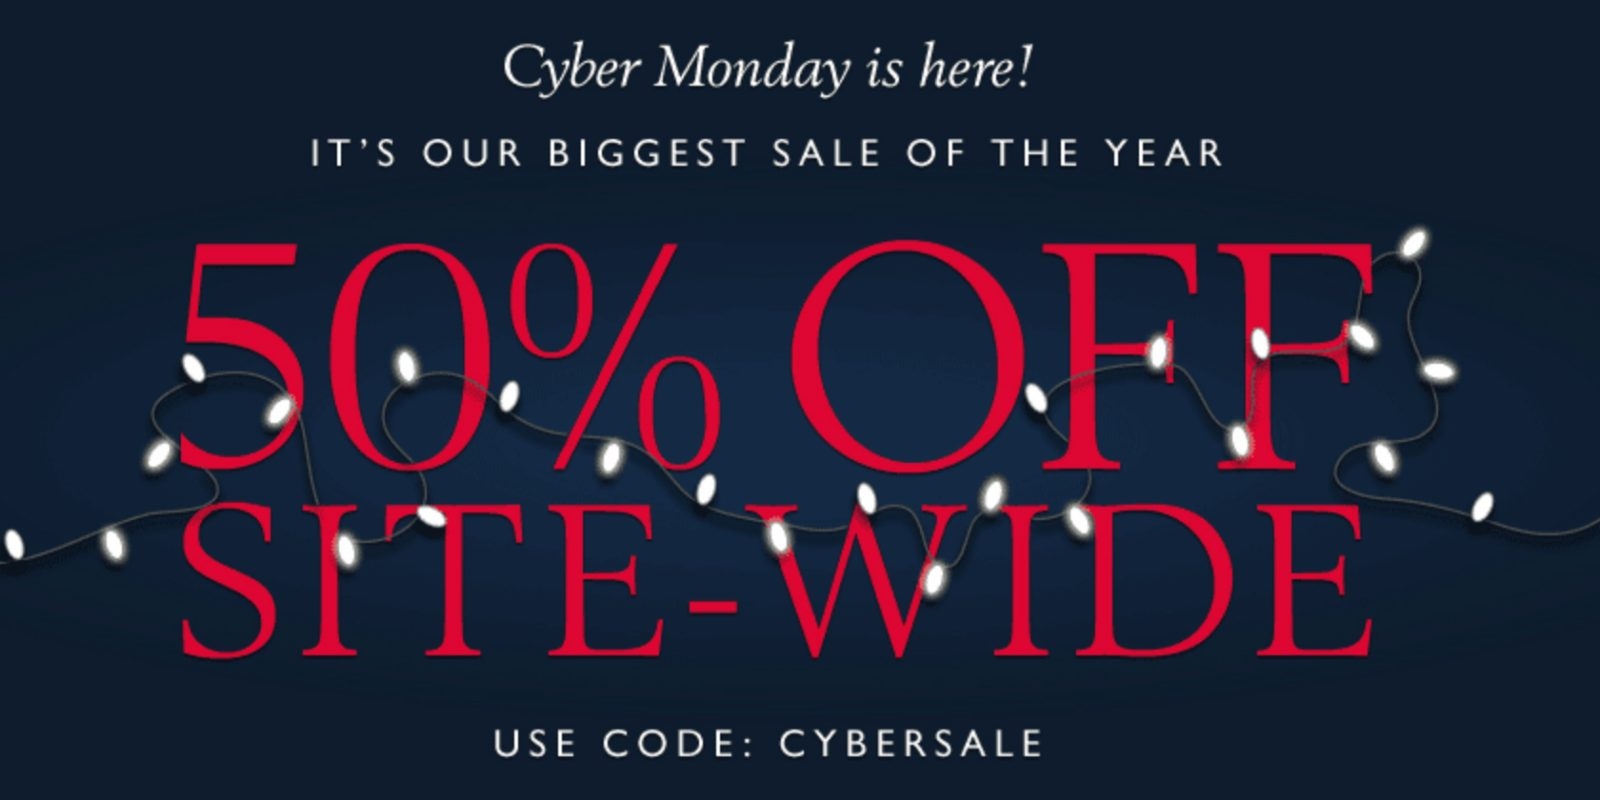 58760f38 Cyber Monday Fashion Deals: Tommy Hilfiger 50% off – Cashmere Sweater $50  (Reg. $100), up to 60% off at Timbuk2, Amazon, others